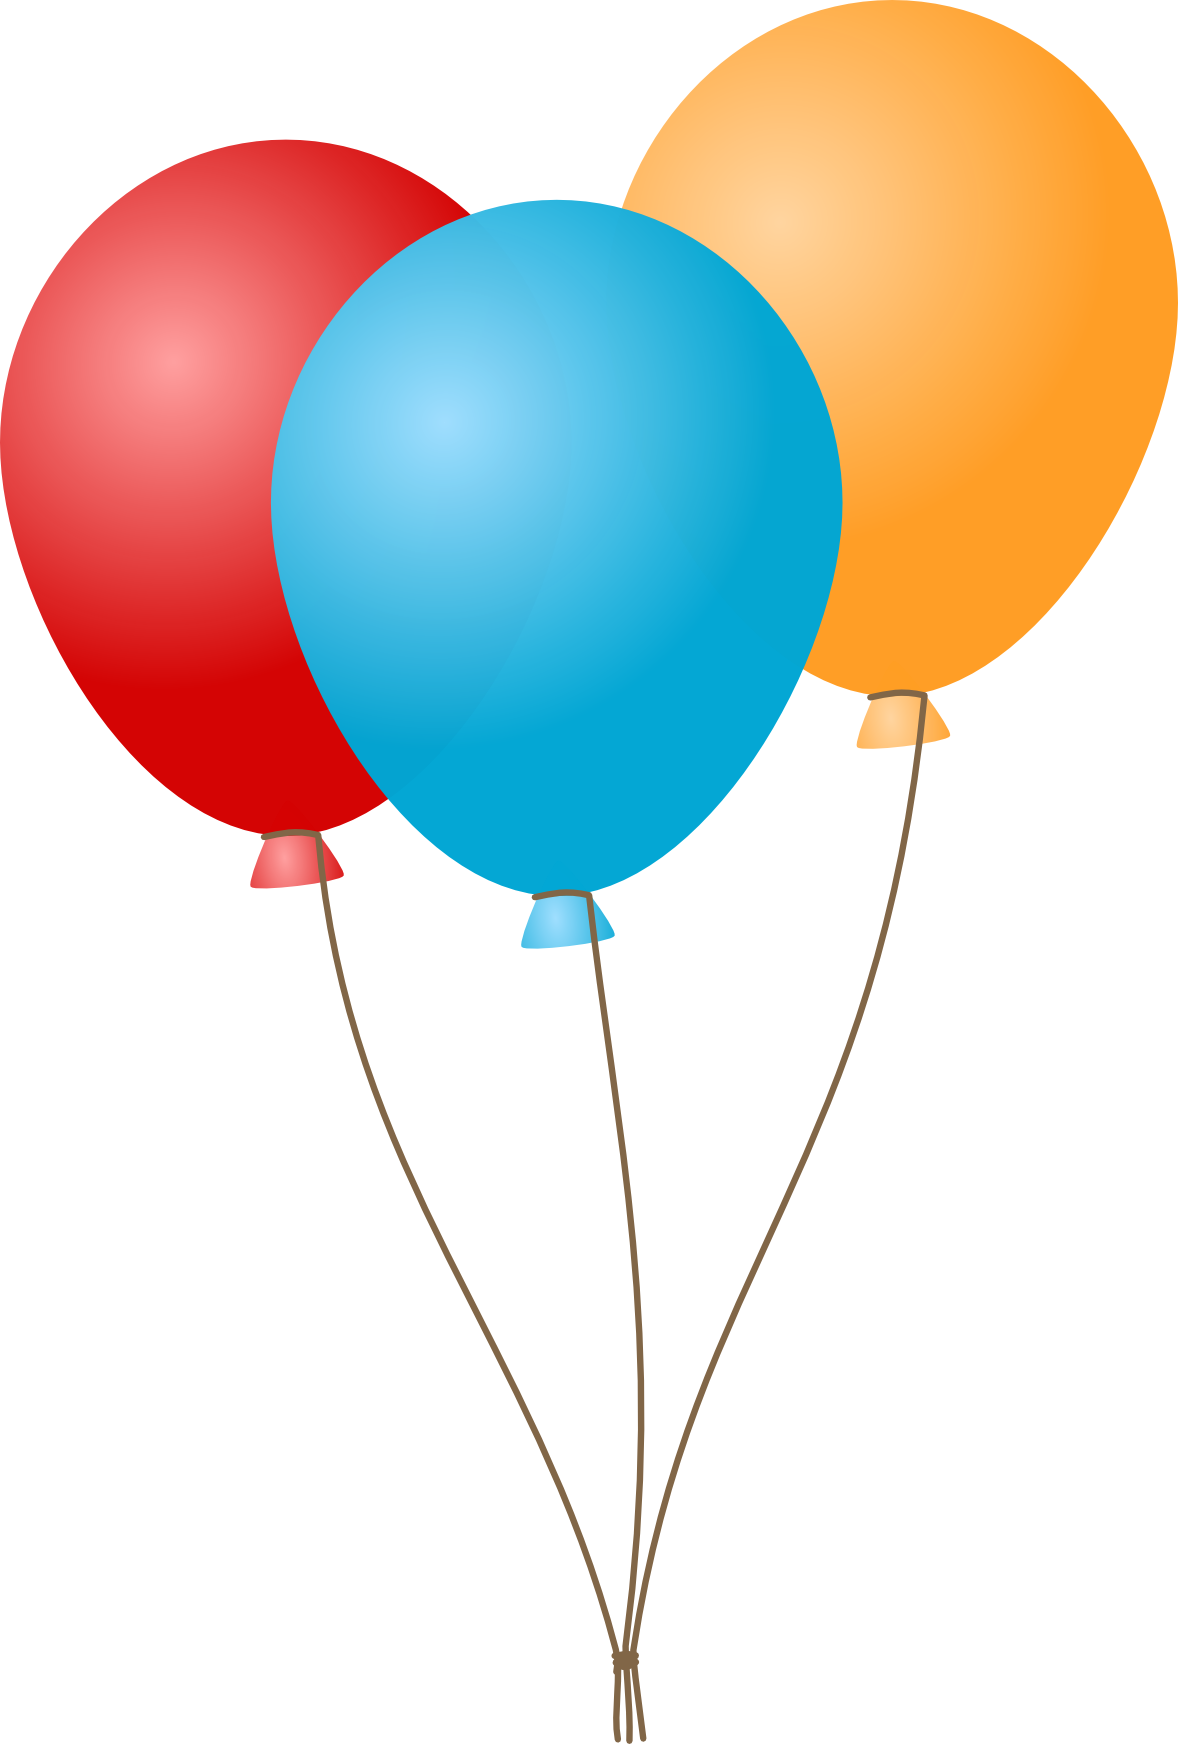 3 balloon png. Images free picture download